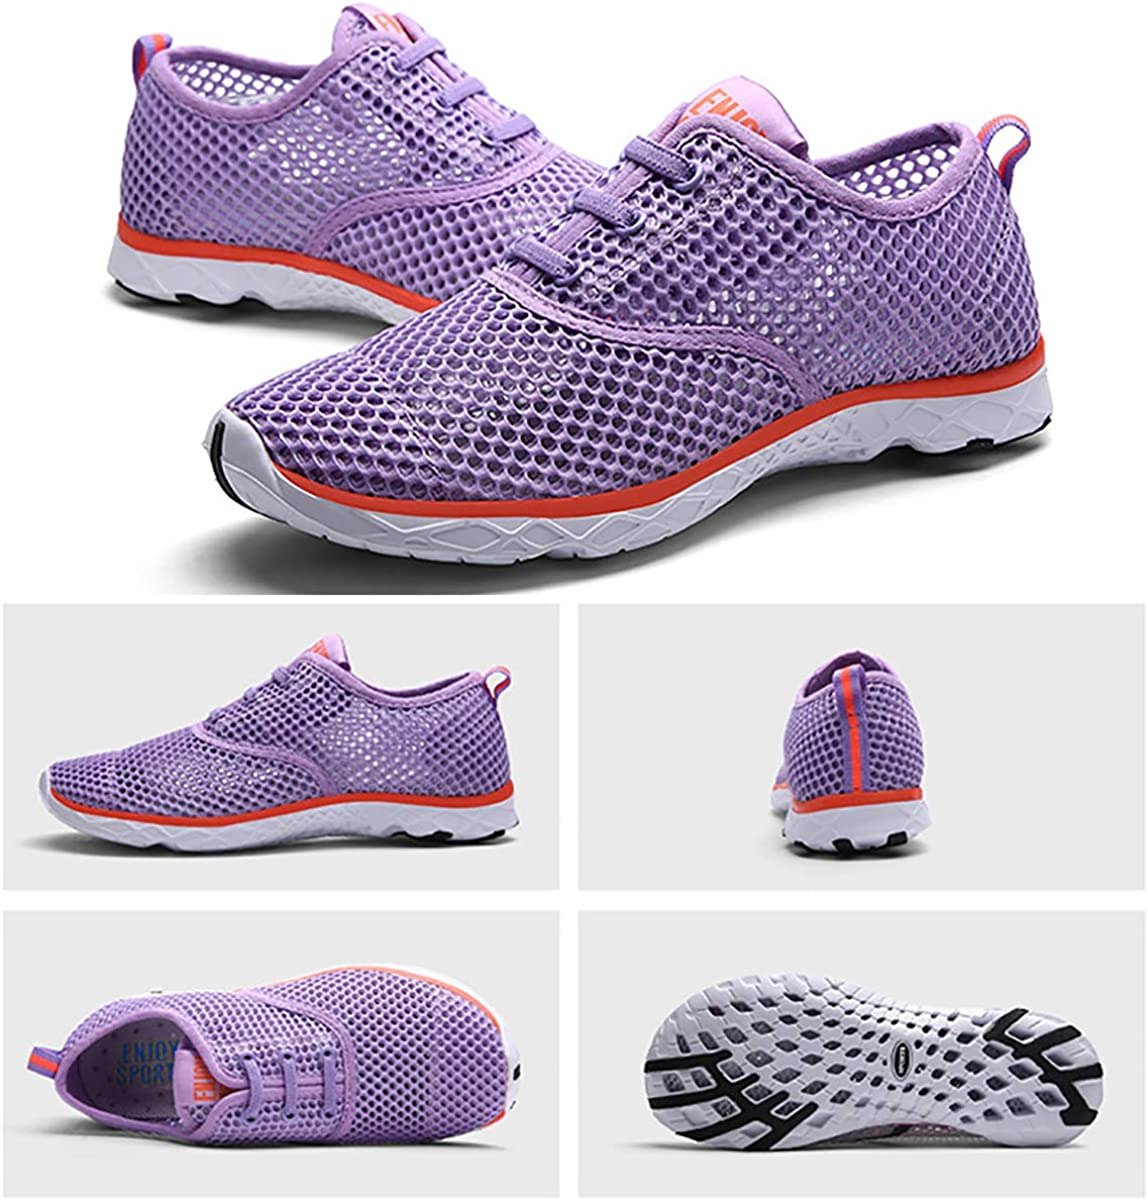 Quick Drying Aqua Beach Barefoot Shoes Athletic Sneaker Outdoor Slip on for Fishing Surfing gracosy Mens Womens Water Sport Shoes